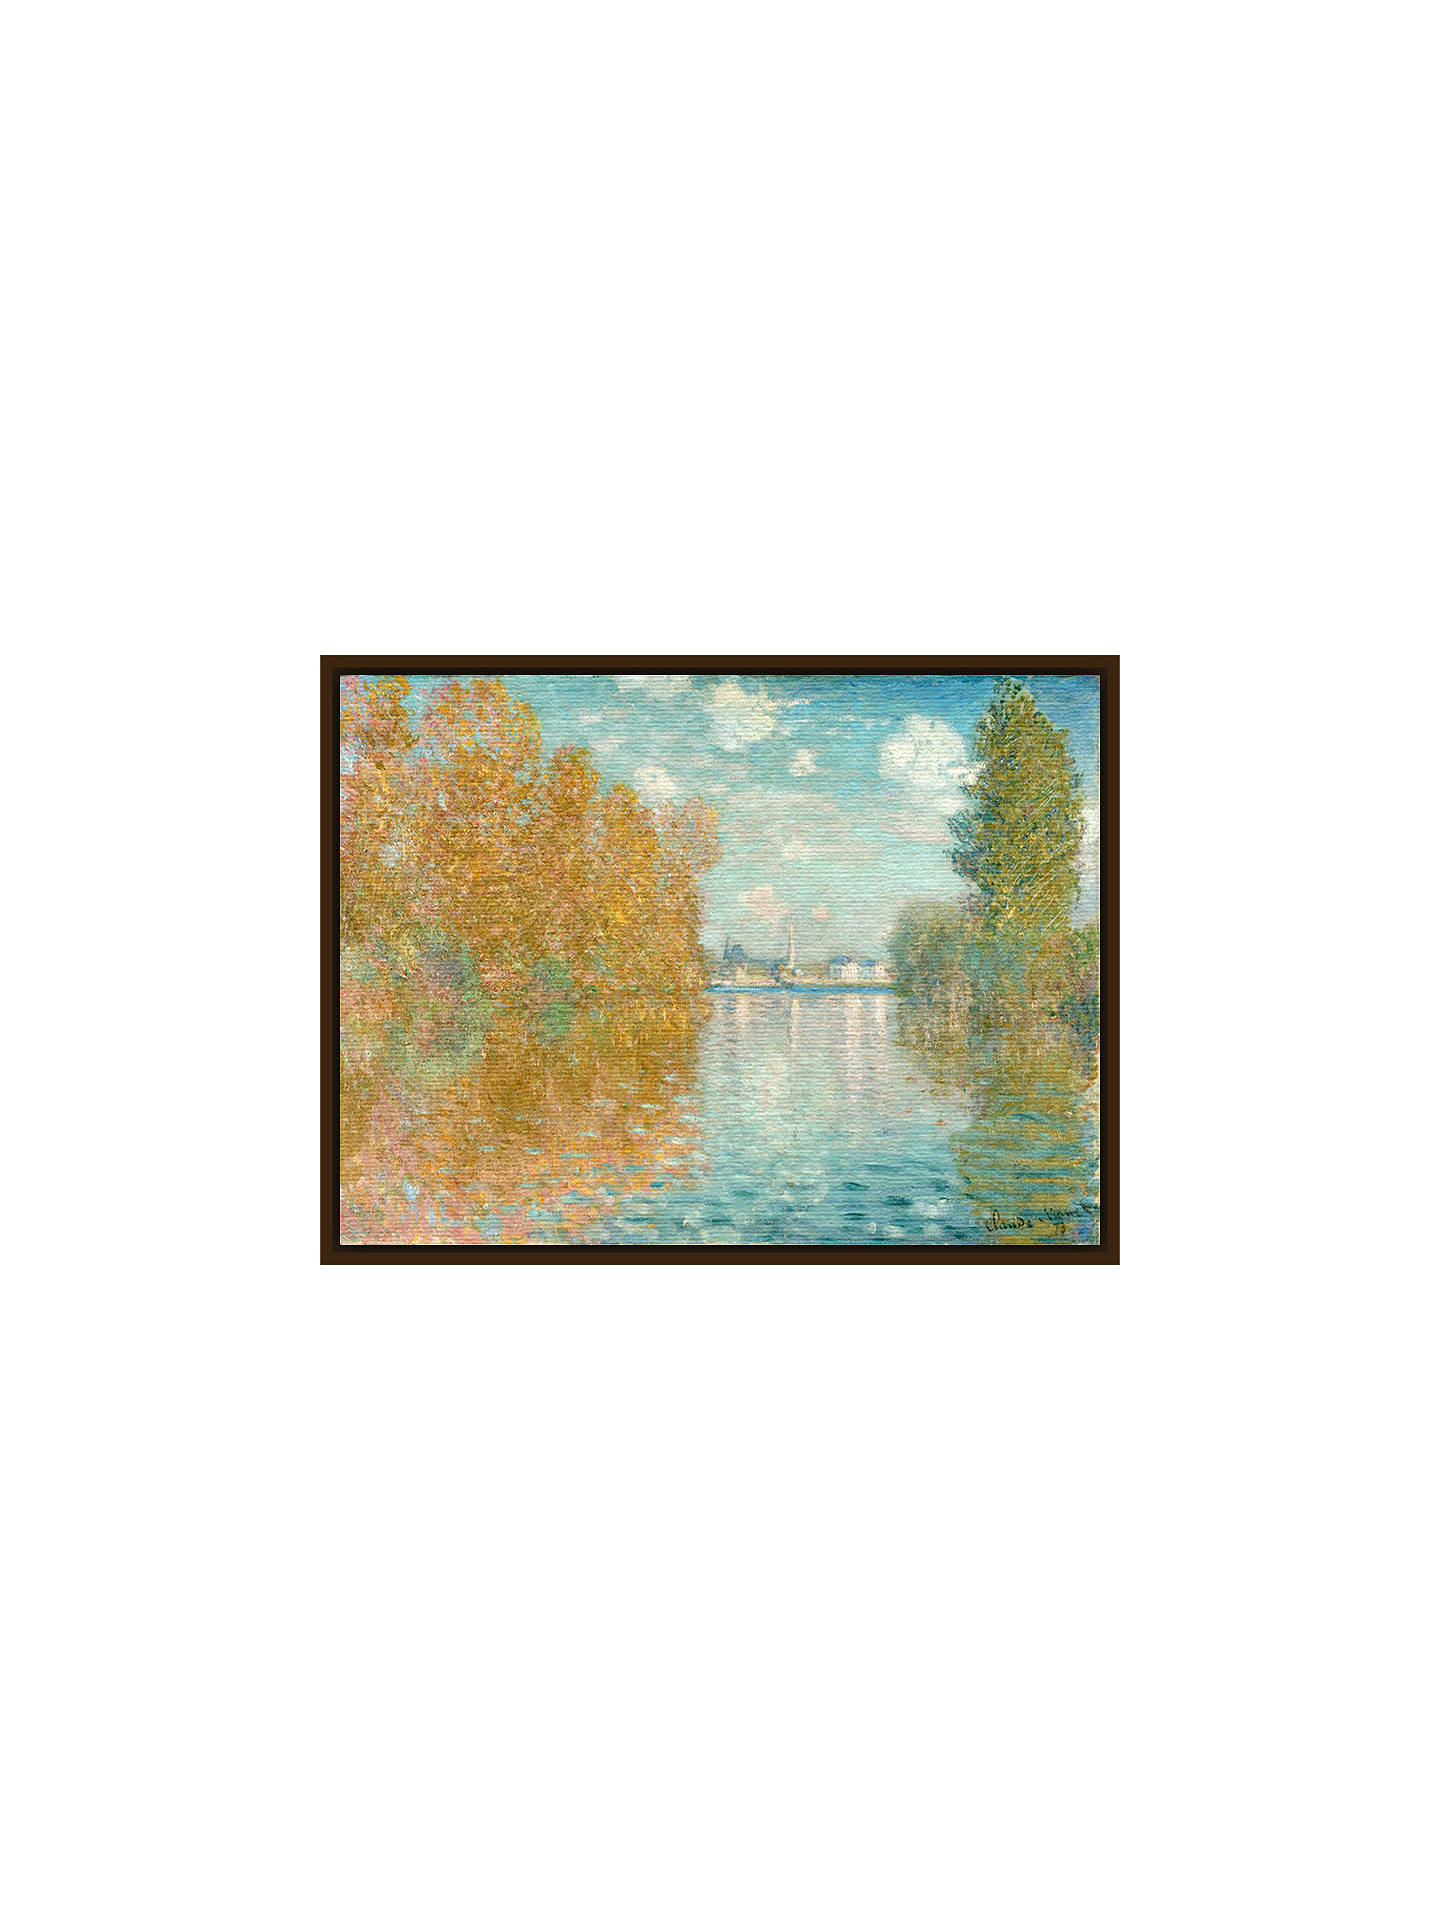 BuyThe Courtauld Gallery, Claude Monet - Autumn effect at Argenteuil 1873 Print, Dark Brown Framed Canvas, 60 x 80cm Online at johnlewis.com